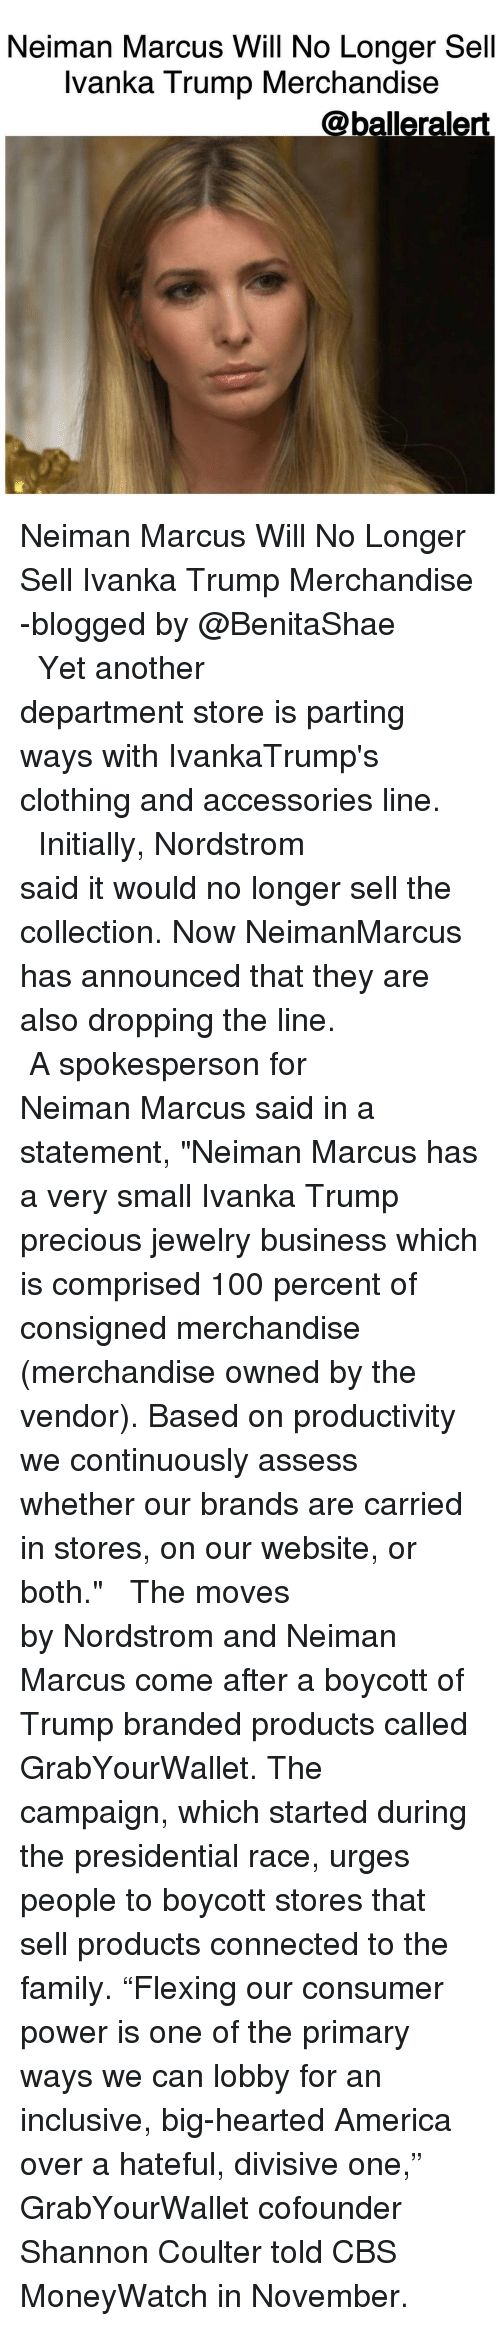 "merchandising: Neiman Marcus Will No Longer Sell  Ivanka Trump Merchandise  @balleralert. Neiman Marcus Will No Longer Sell Ivanka Trump Merchandise -blogged by @BenitaShae ⠀⠀⠀⠀⠀⠀⠀⠀⠀ ⠀⠀⠀⠀⠀⠀⠀⠀⠀ Yet another department store is parting ways with IvankaTrump's clothing and accessories line. ⠀⠀⠀⠀⠀⠀⠀⠀⠀ ⠀⠀⠀⠀⠀⠀⠀⠀⠀ Initially, Nordstrom said it would no longer sell the collection. Now NeimanMarcus has announced that they are also dropping the line. ⠀⠀⠀⠀⠀⠀⠀⠀⠀ ⠀⠀⠀⠀⠀⠀⠀⠀⠀ A spokesperson for Neiman Marcus said in a statement, ""Neiman Marcus has a very small Ivanka Trump precious jewelry business which is comprised 100 percent of consigned merchandise (merchandise owned by the vendor). Based on productivity we continuously assess whether our brands are carried in stores, on our website, or both."" ⠀⠀⠀⠀⠀⠀⠀⠀⠀ ⠀⠀⠀⠀⠀⠀⠀⠀⠀ The moves by Nordstrom and Neiman Marcus come after a boycott of Trump branded products called GrabYourWallet. The campaign, which started during the presidential race, urges people to boycott stores that sell products connected to the family. ""Flexing our consumer power is one of the primary ways we can lobby for an inclusive, big-hearted America over a hateful, divisive one,"" GrabYourWallet cofounder Shannon Coulter told CBS MoneyWatch in November."